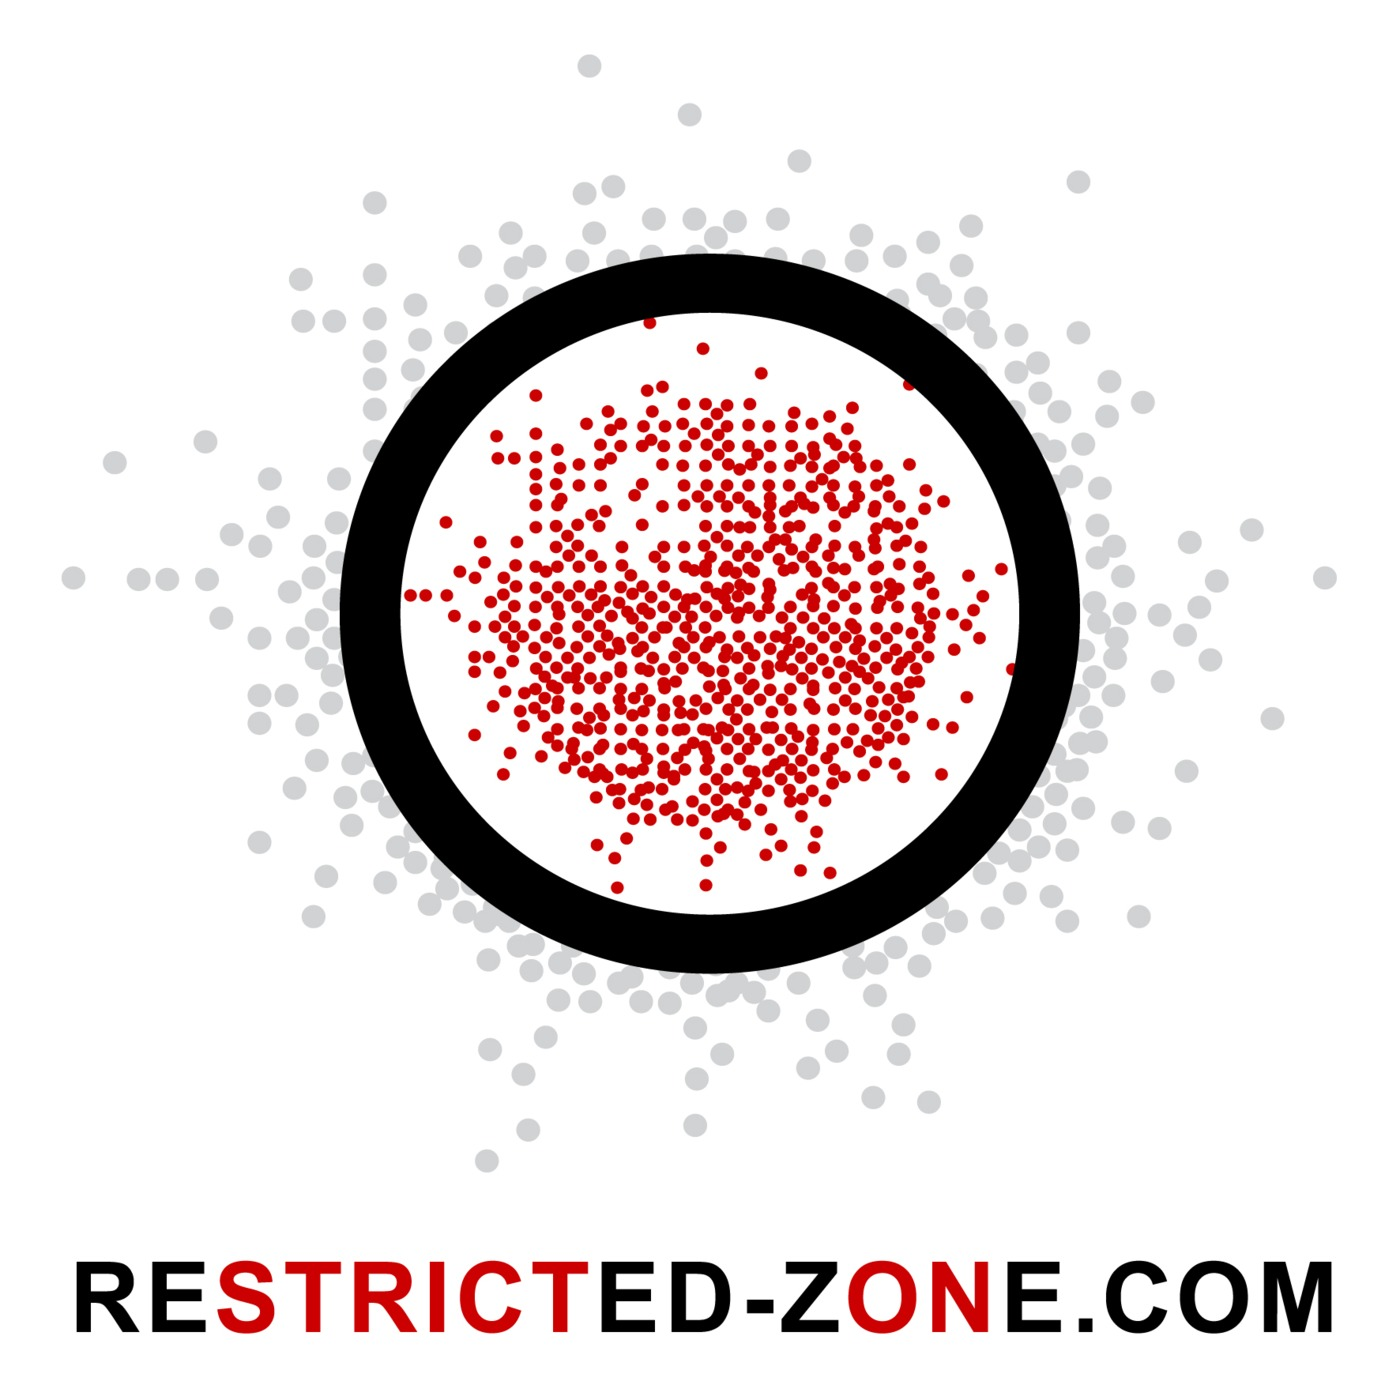 RESTRICTED-ZONE